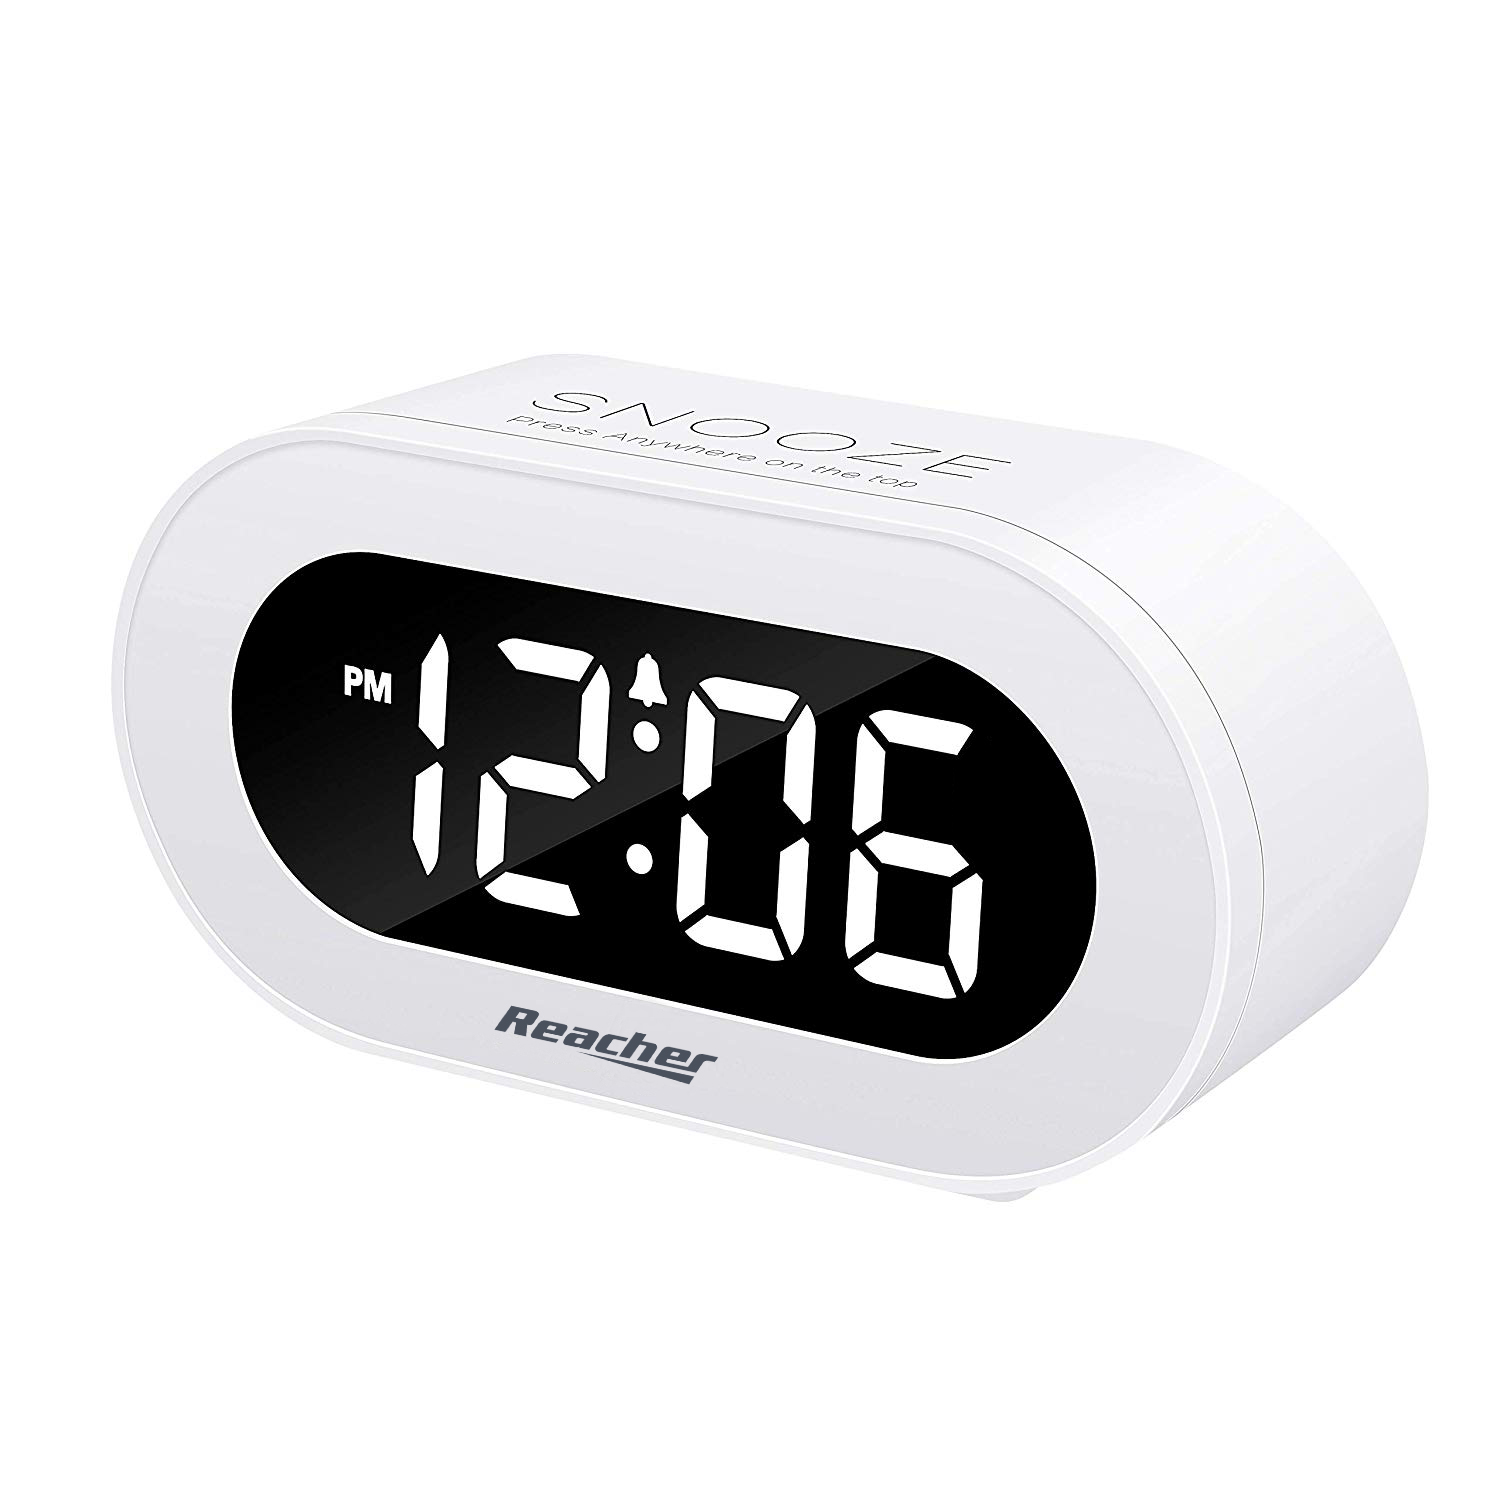 (N188)Reacher White Small LED Digital Alarm Clock with Snooze